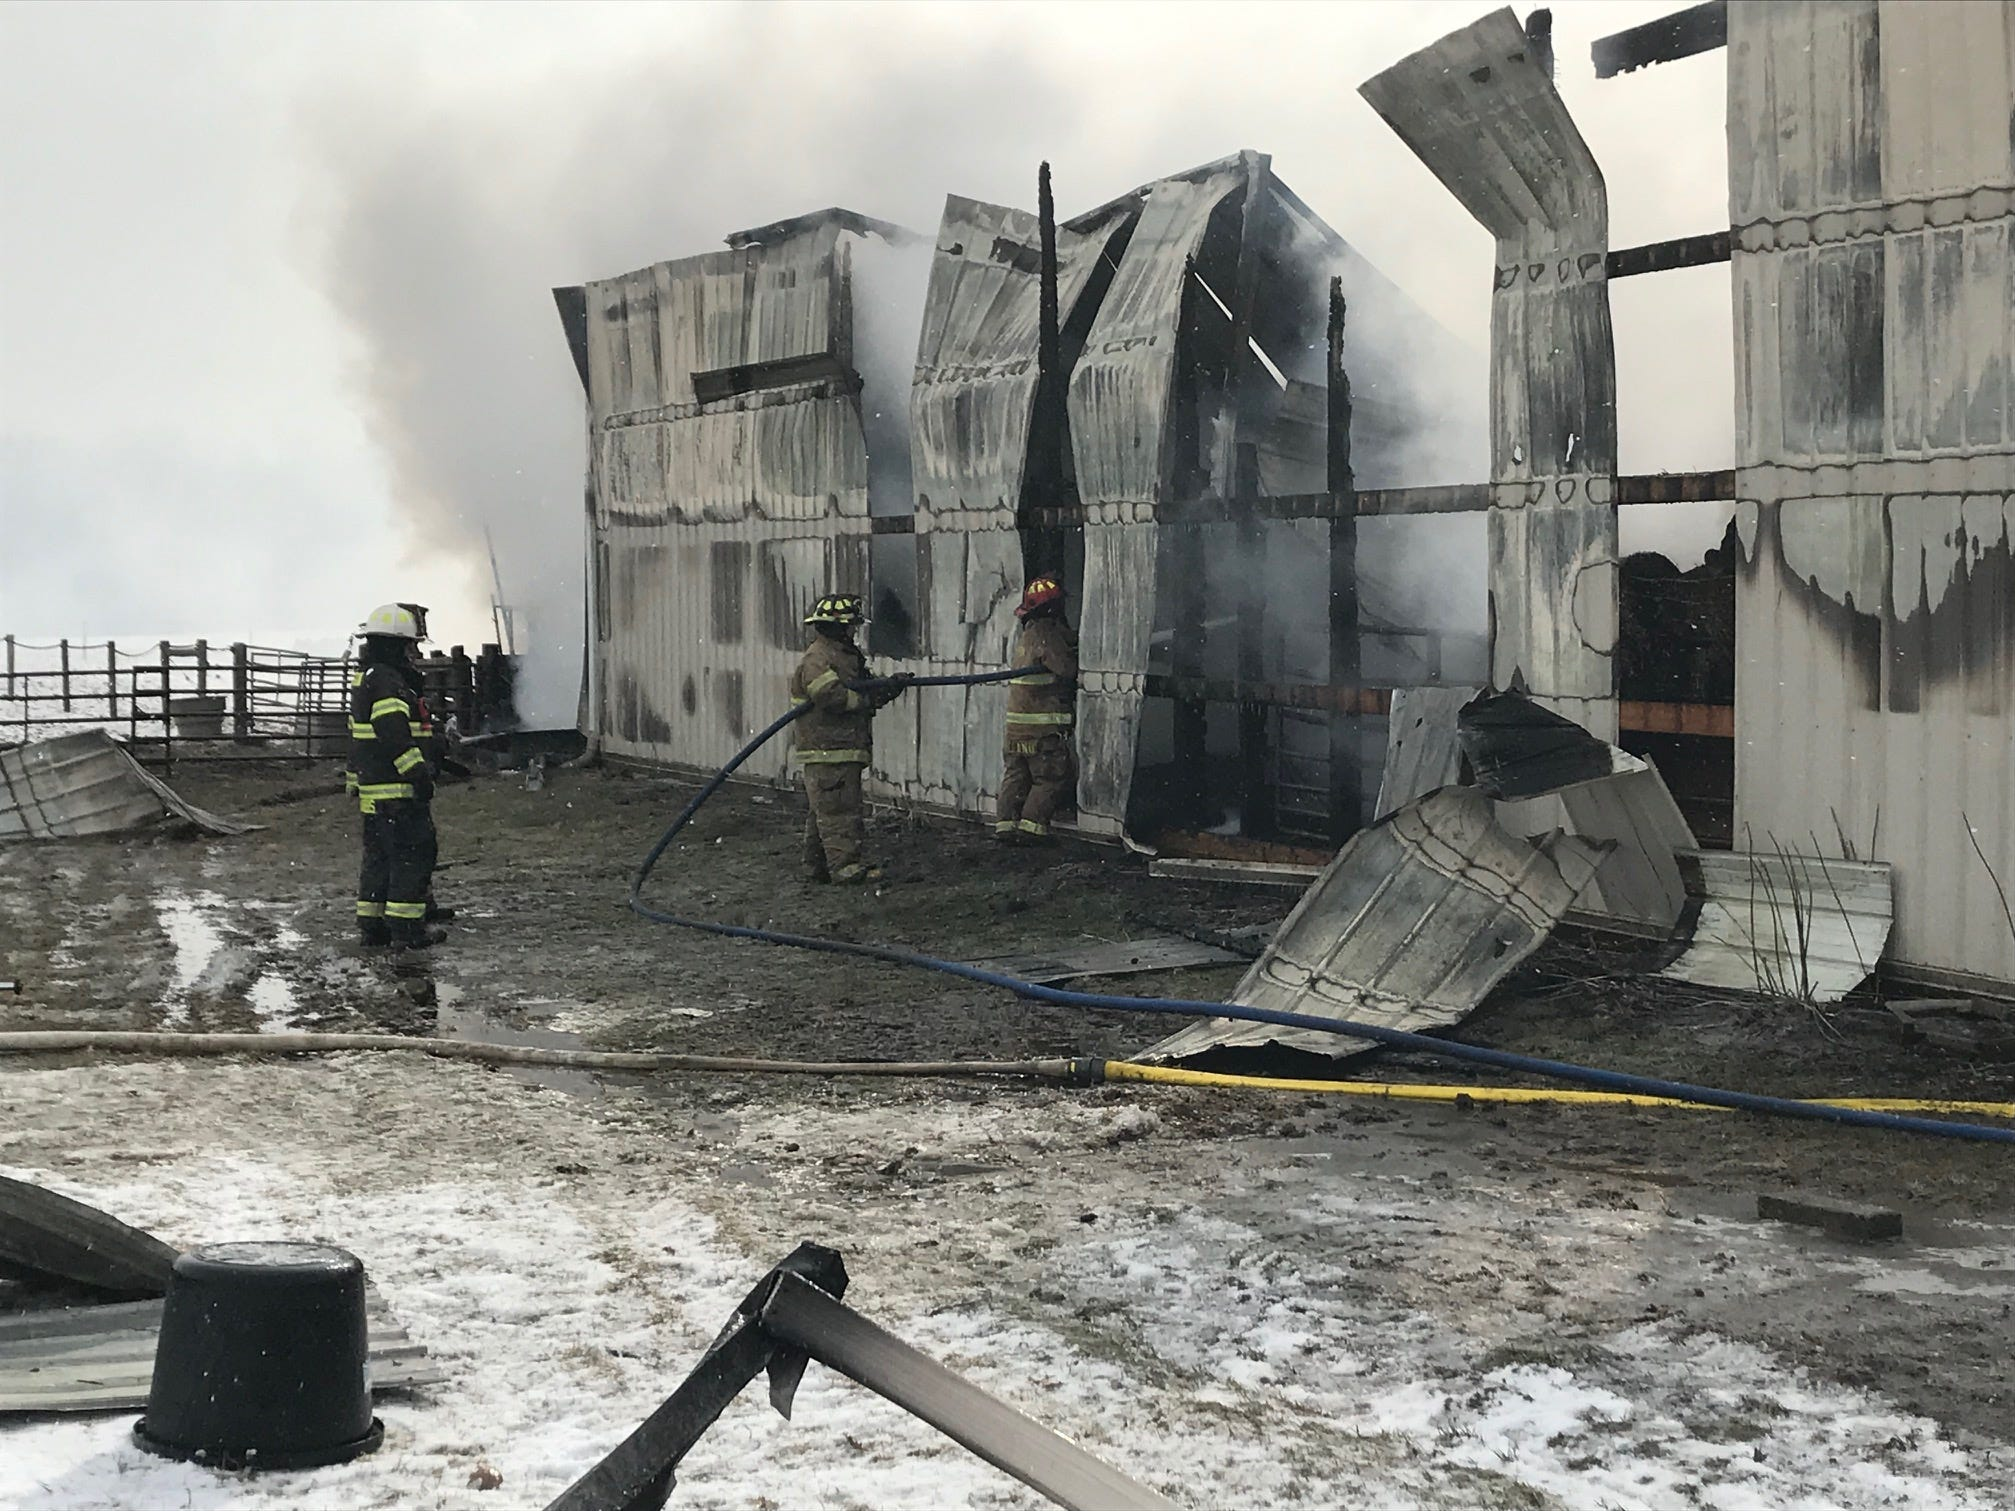 Firefighters work to control a barn fire Tuesday, March 5, 2019.